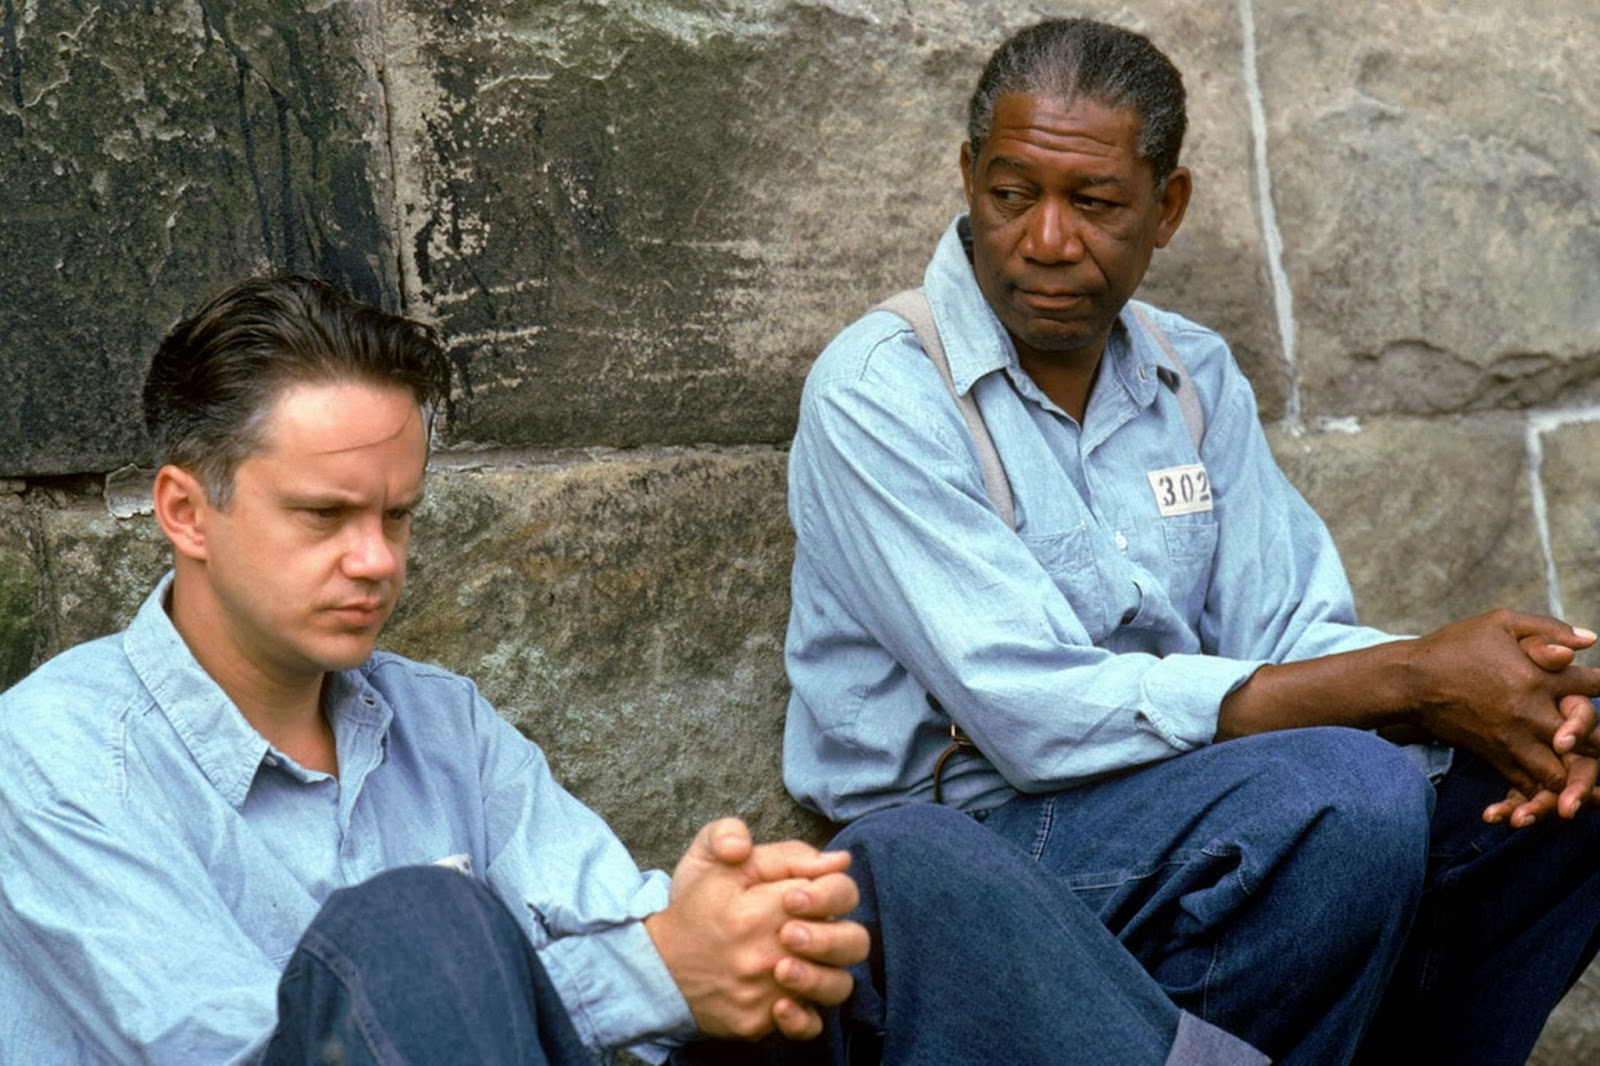 movie review the shawshank redemption 1994 the ace black blog movie review the shawshank redemption 1994